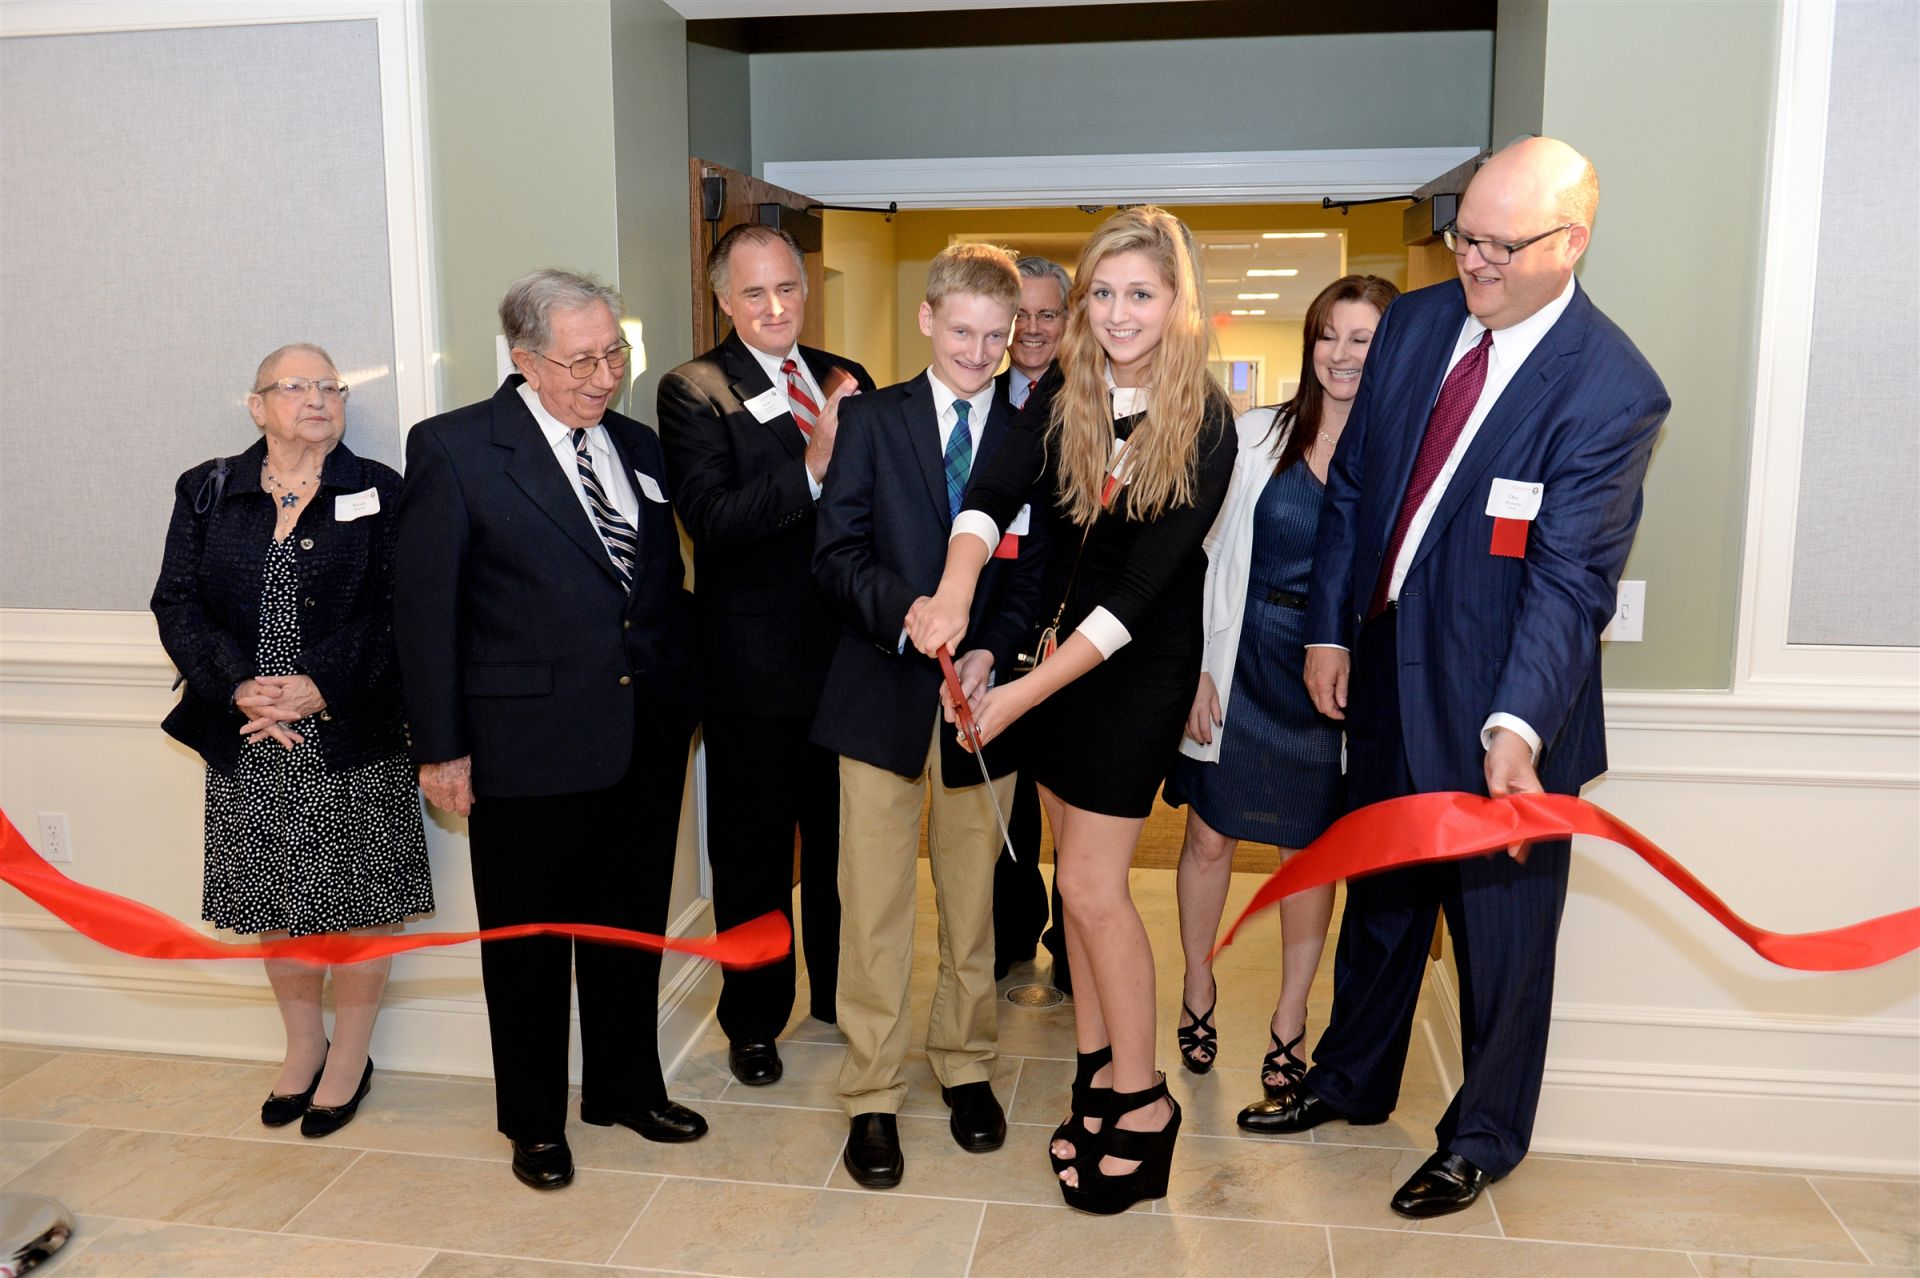 The Hurwitz family at the grand opening celebration.